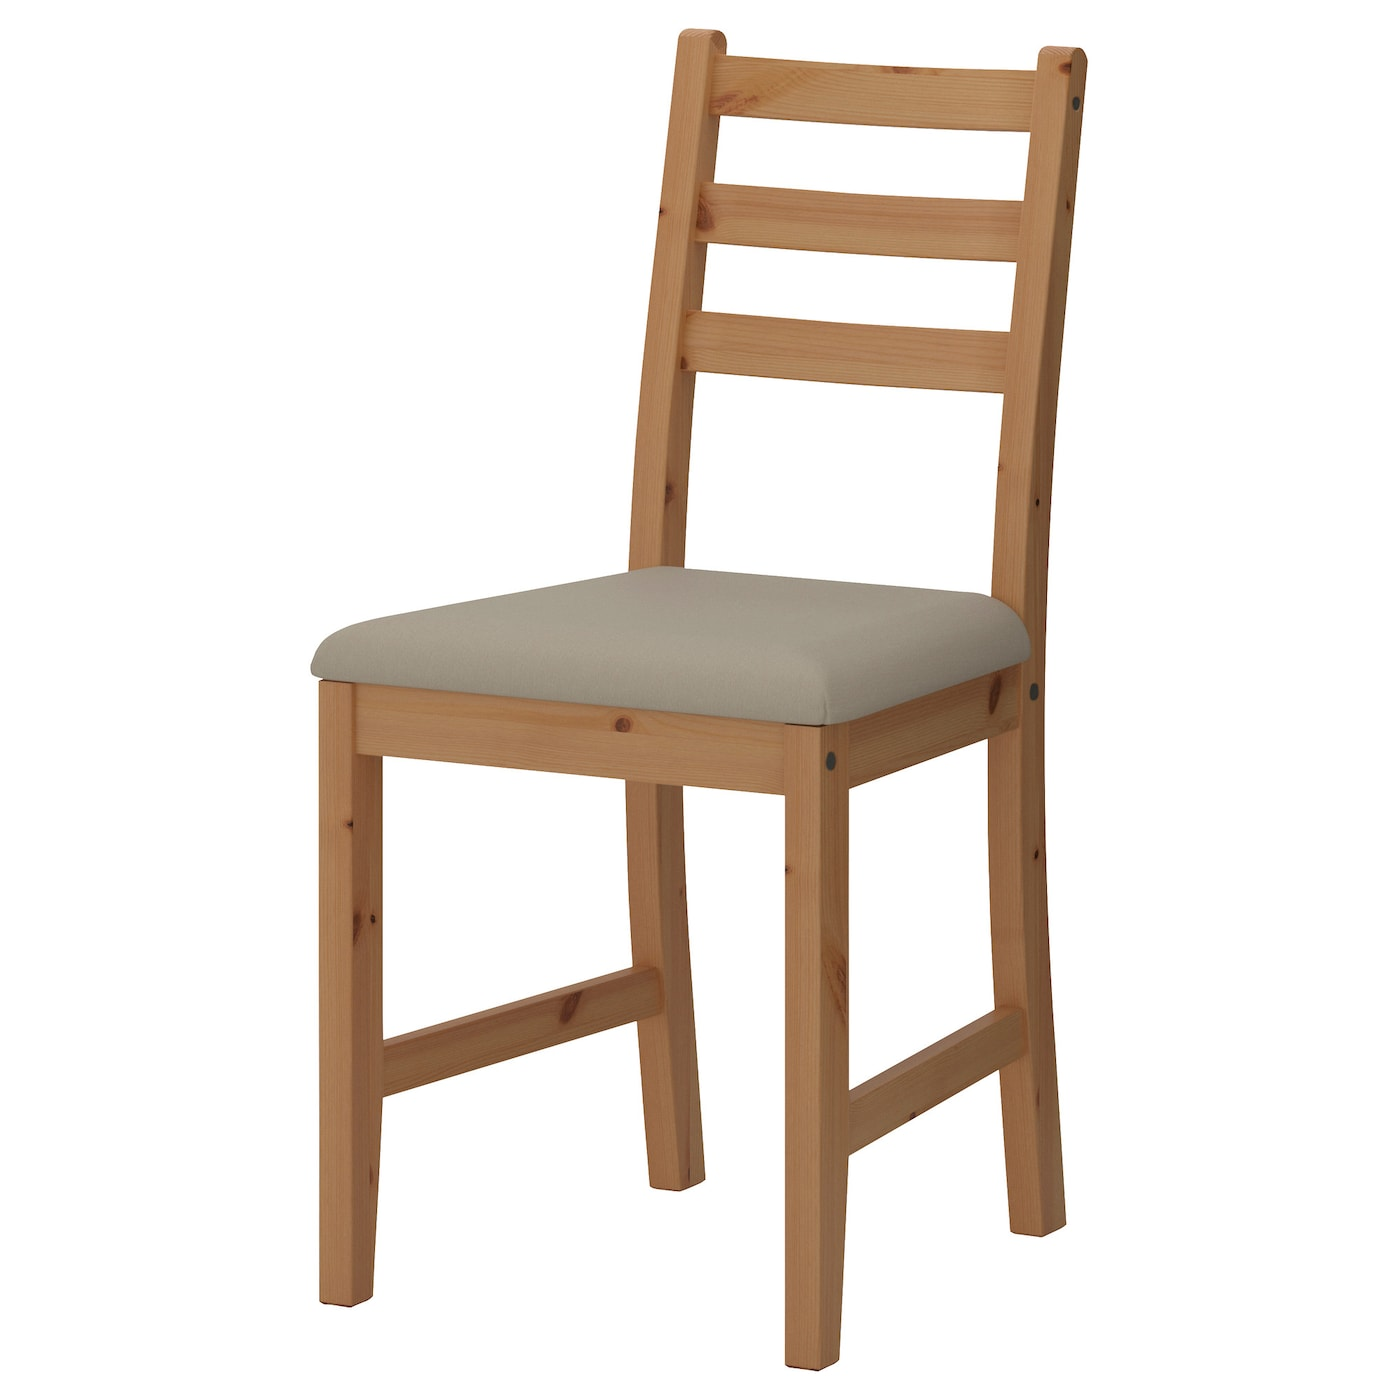 IKEA LERHAMN chair The chair frame is made of solid wood, which is a durable natural material.